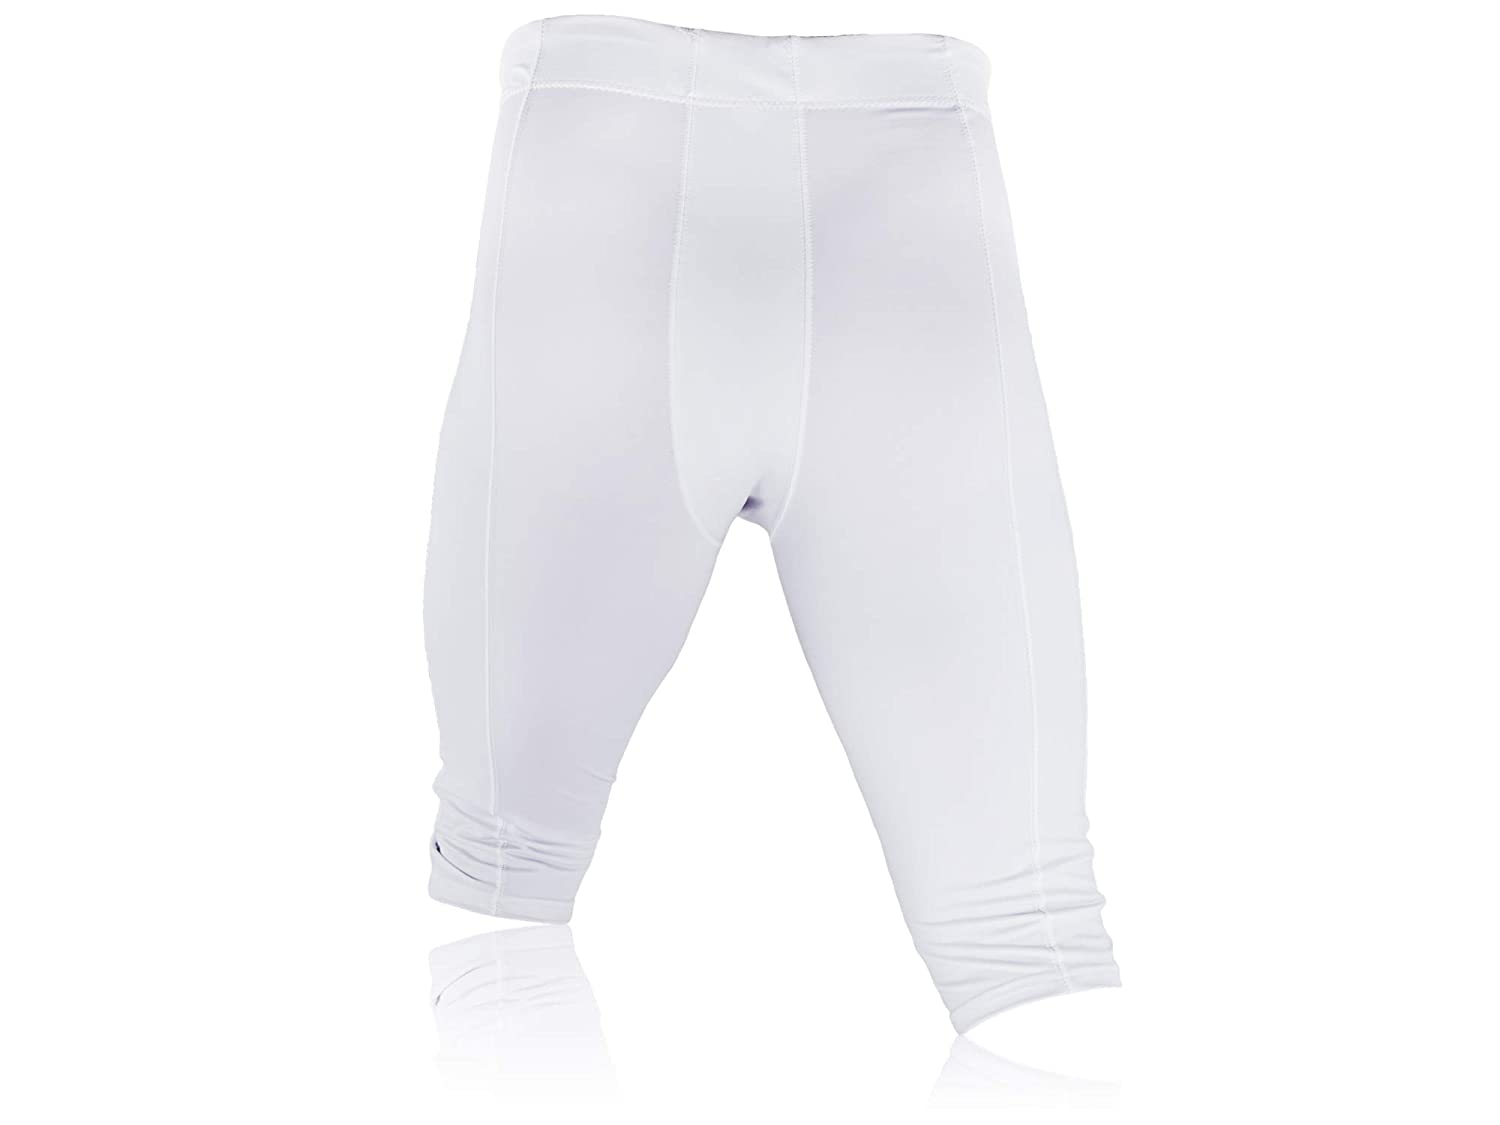 Full Force American Football Professional Trousers Stretch White Size YL-5XL